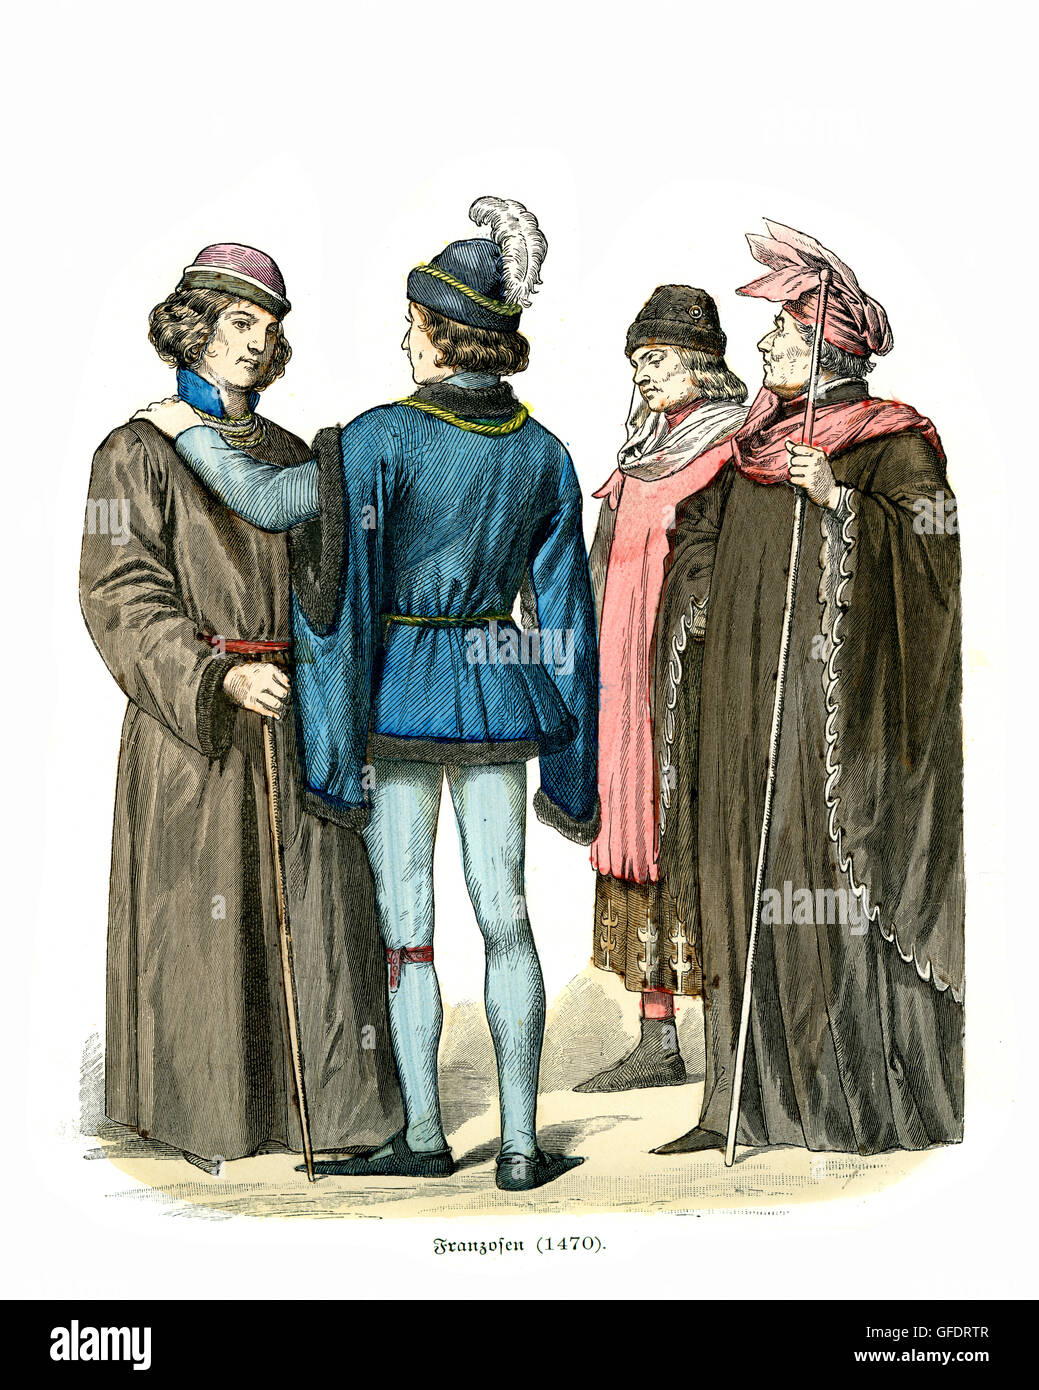 Mens fashions of Medieval France 15th Century - Stock Image